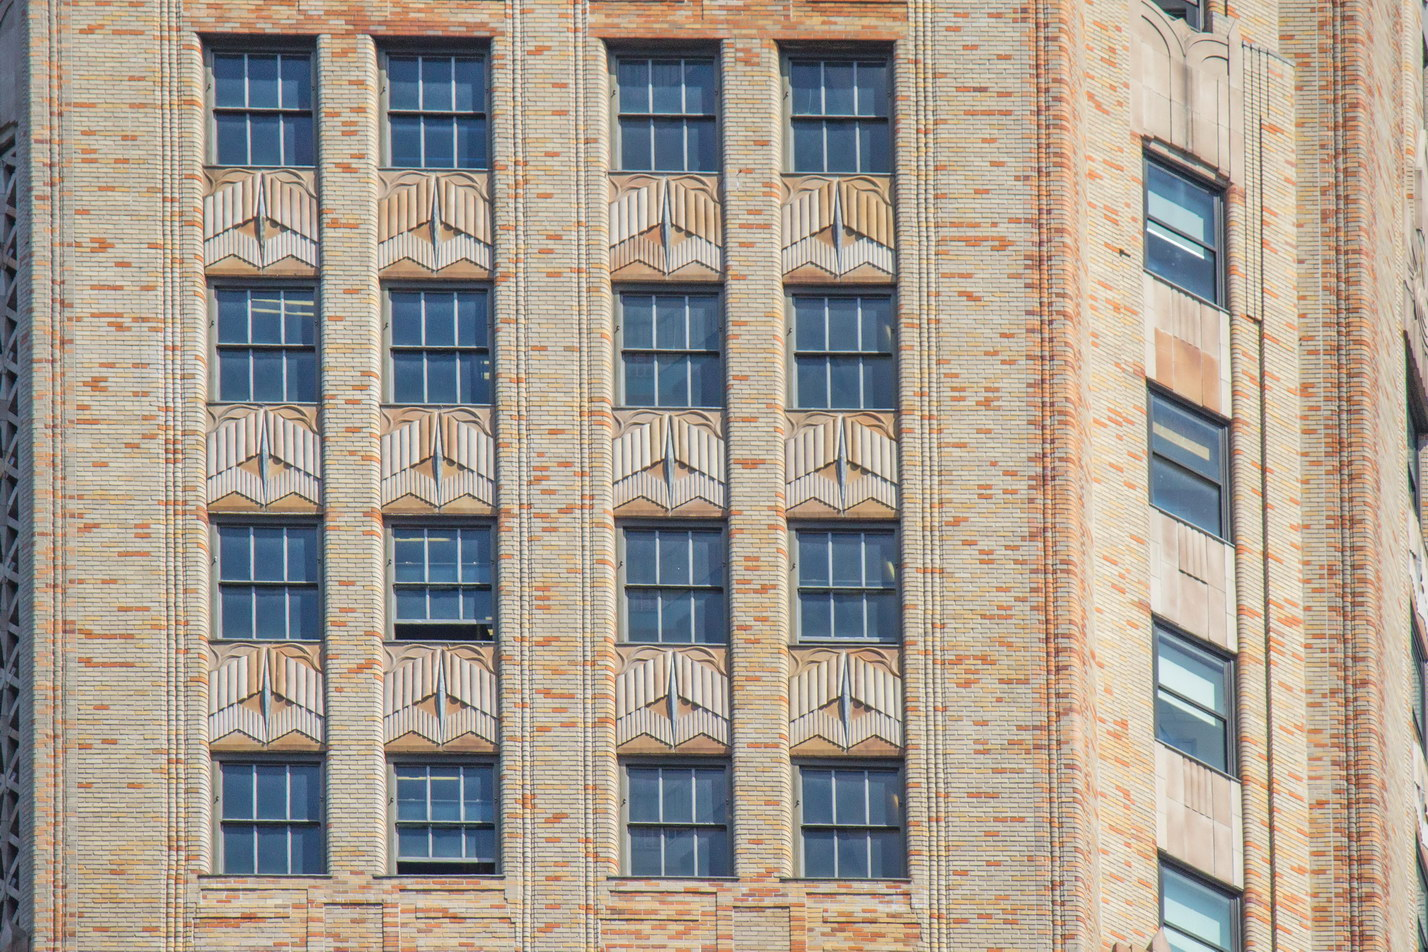 [General Electric Building] O_1569 [9/10/2012 11:36:13 AM]